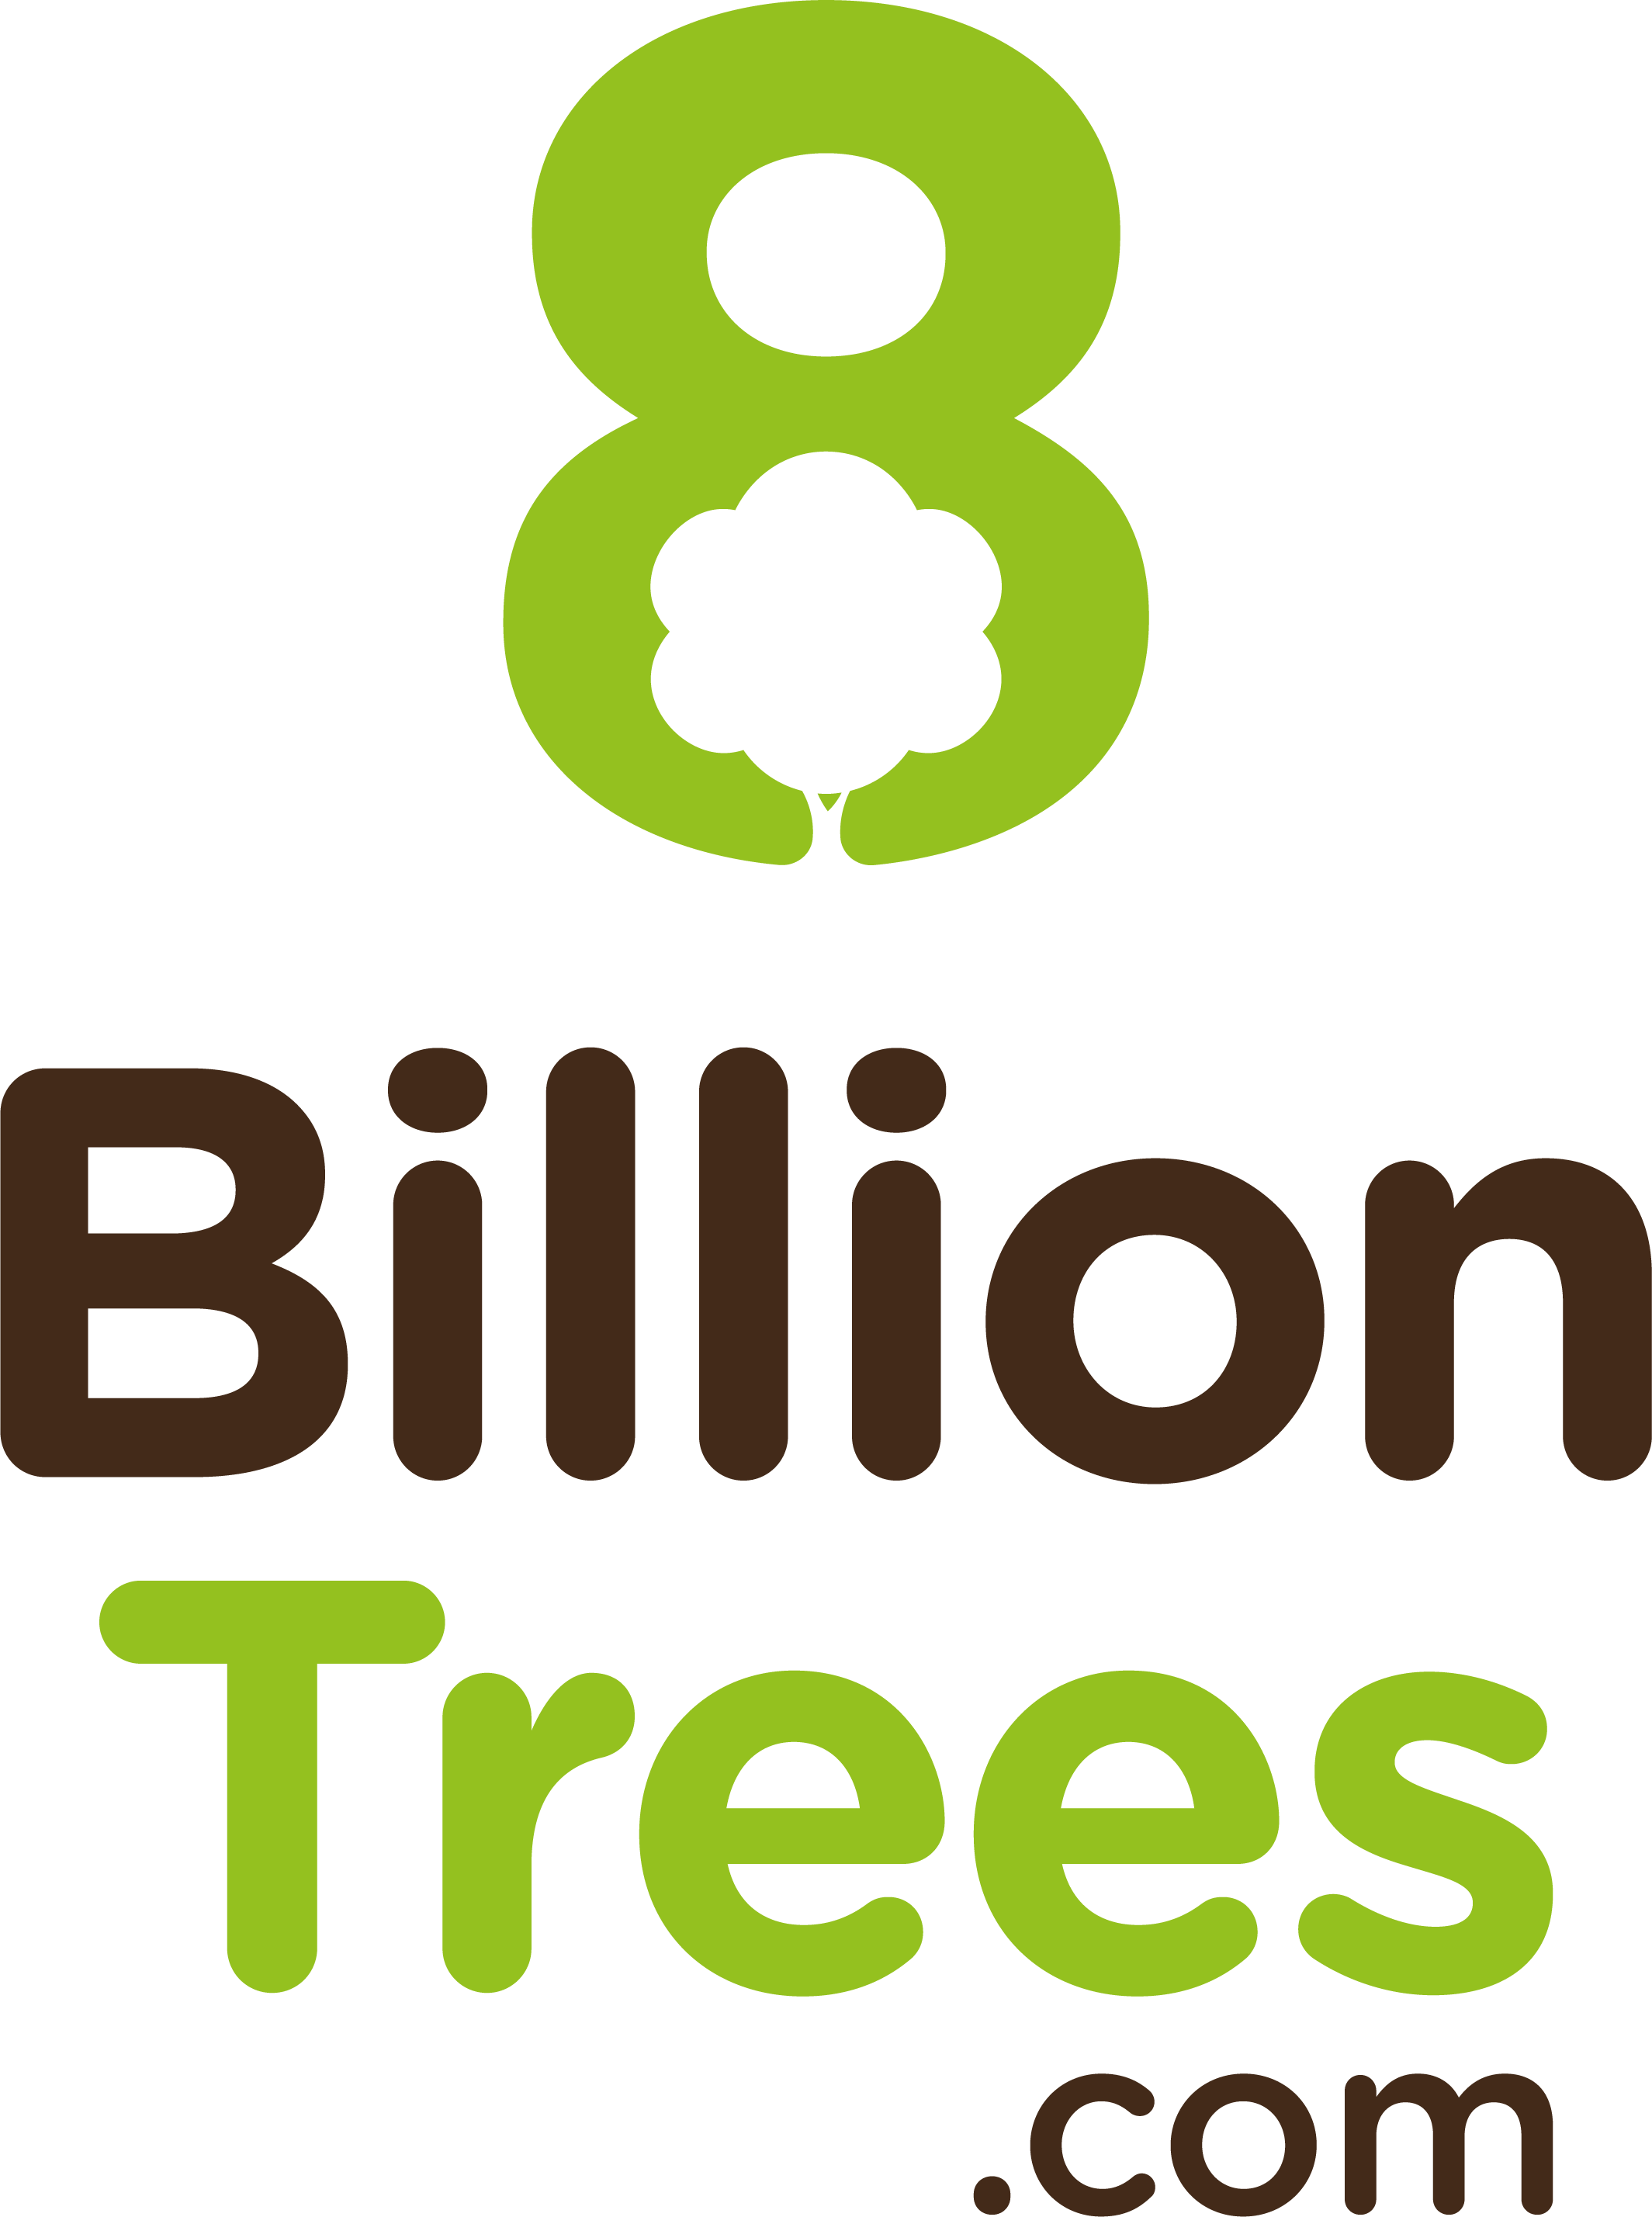 8 Billion Trees logo